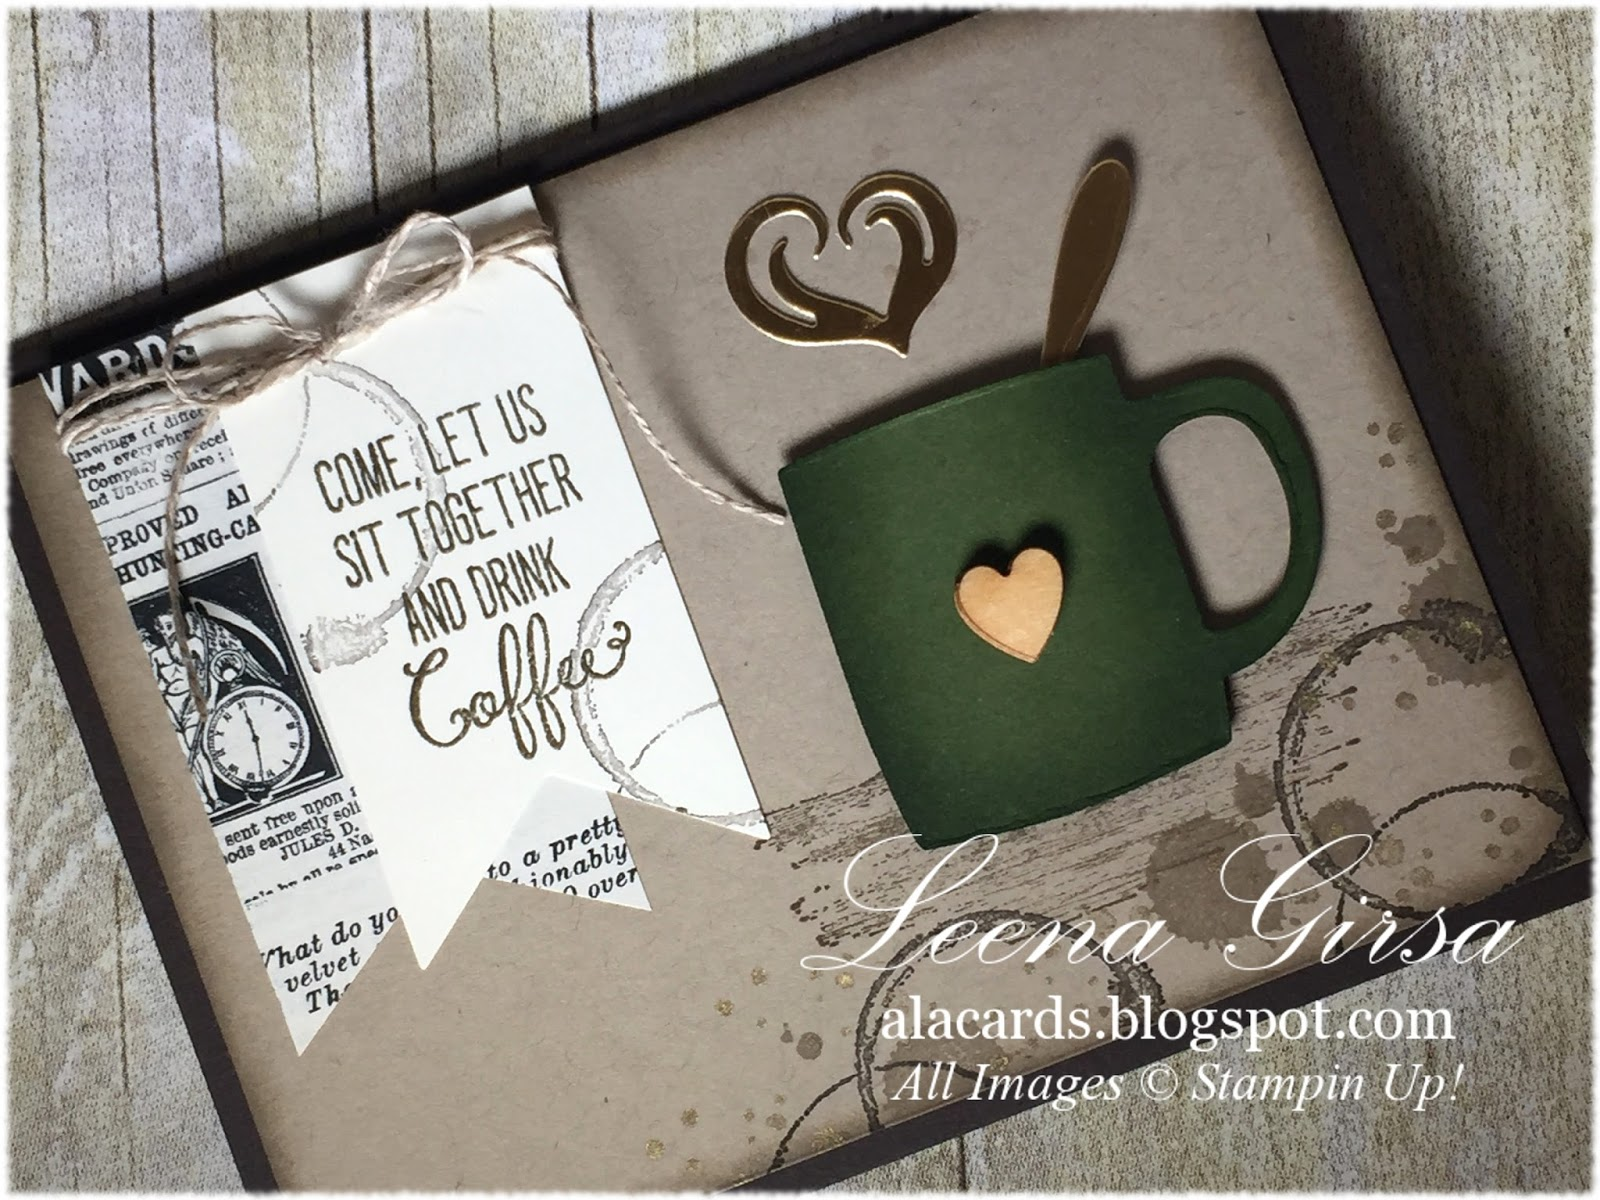 I Added A Little Wooden Heart From The Love Blossoms Embellishment Kit To Mug Spoon And Steam Are Die Cut Gold Foil Sheets Also Using